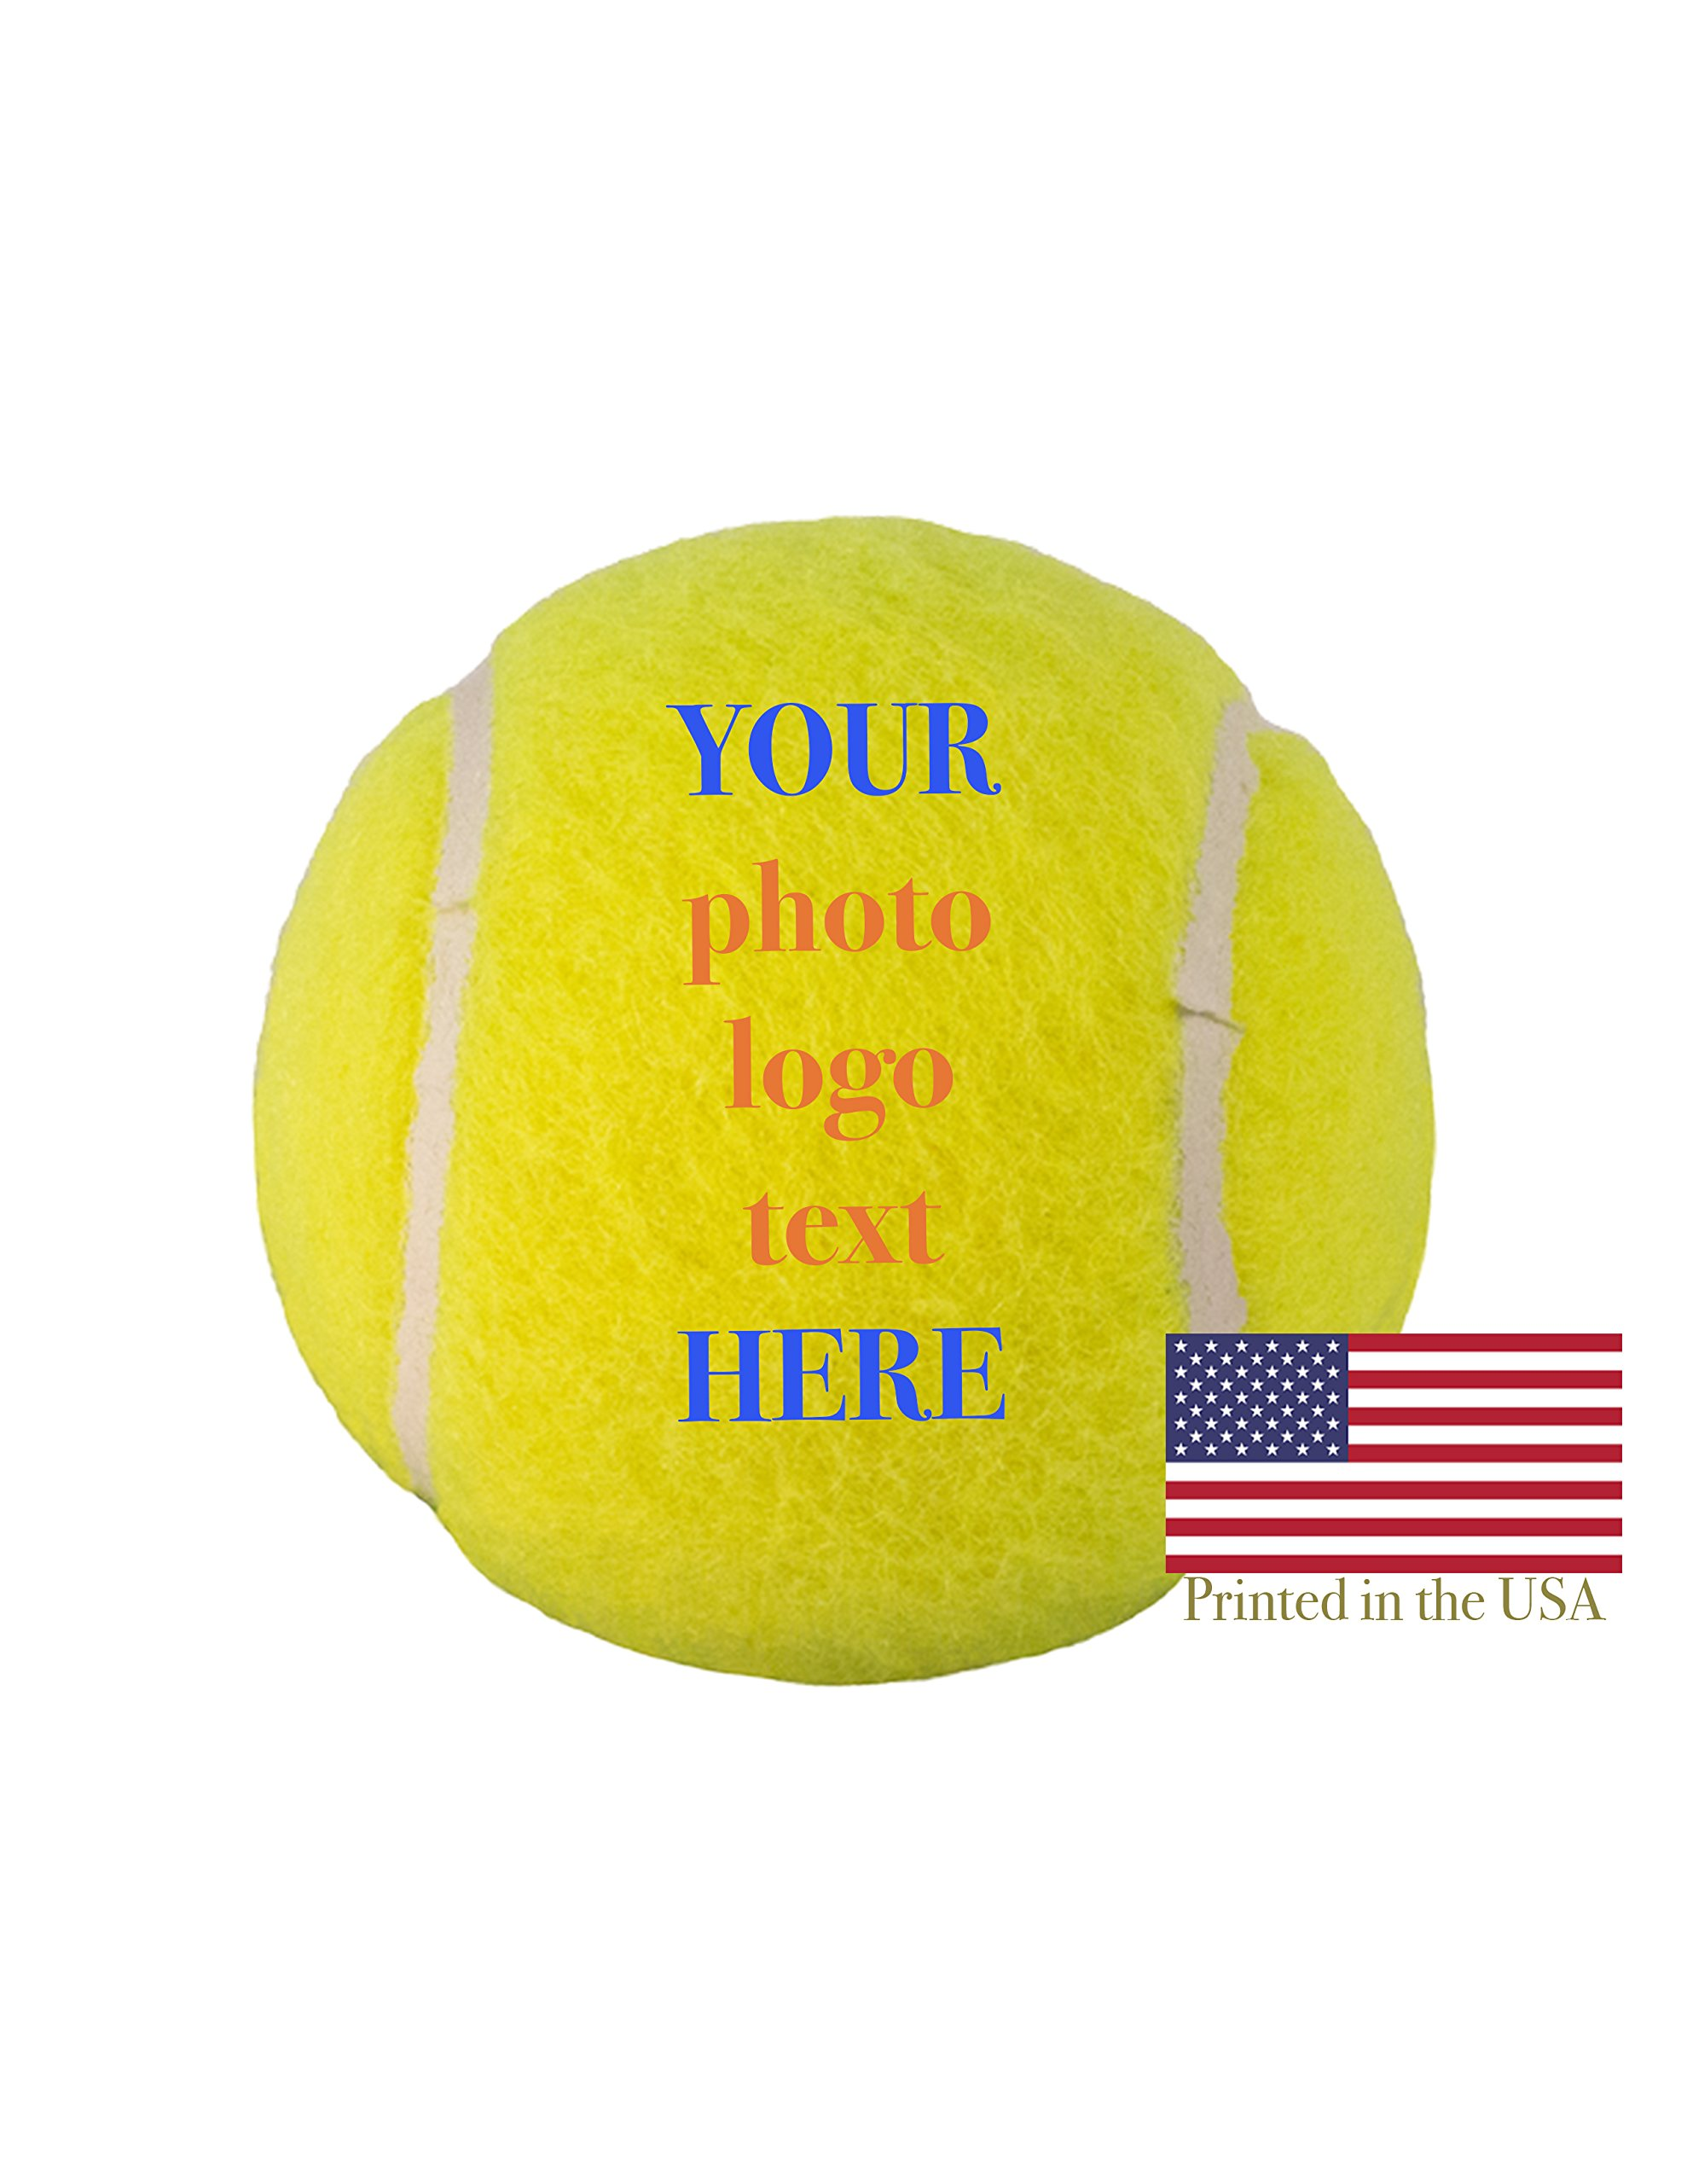 Custom Personalized Tennis Ball Ships Next Day, High Resolution Photos, Logos & Text on Tennis Balls for Players, Trophies, MVP Awards, Coaches, Personalized Gifts